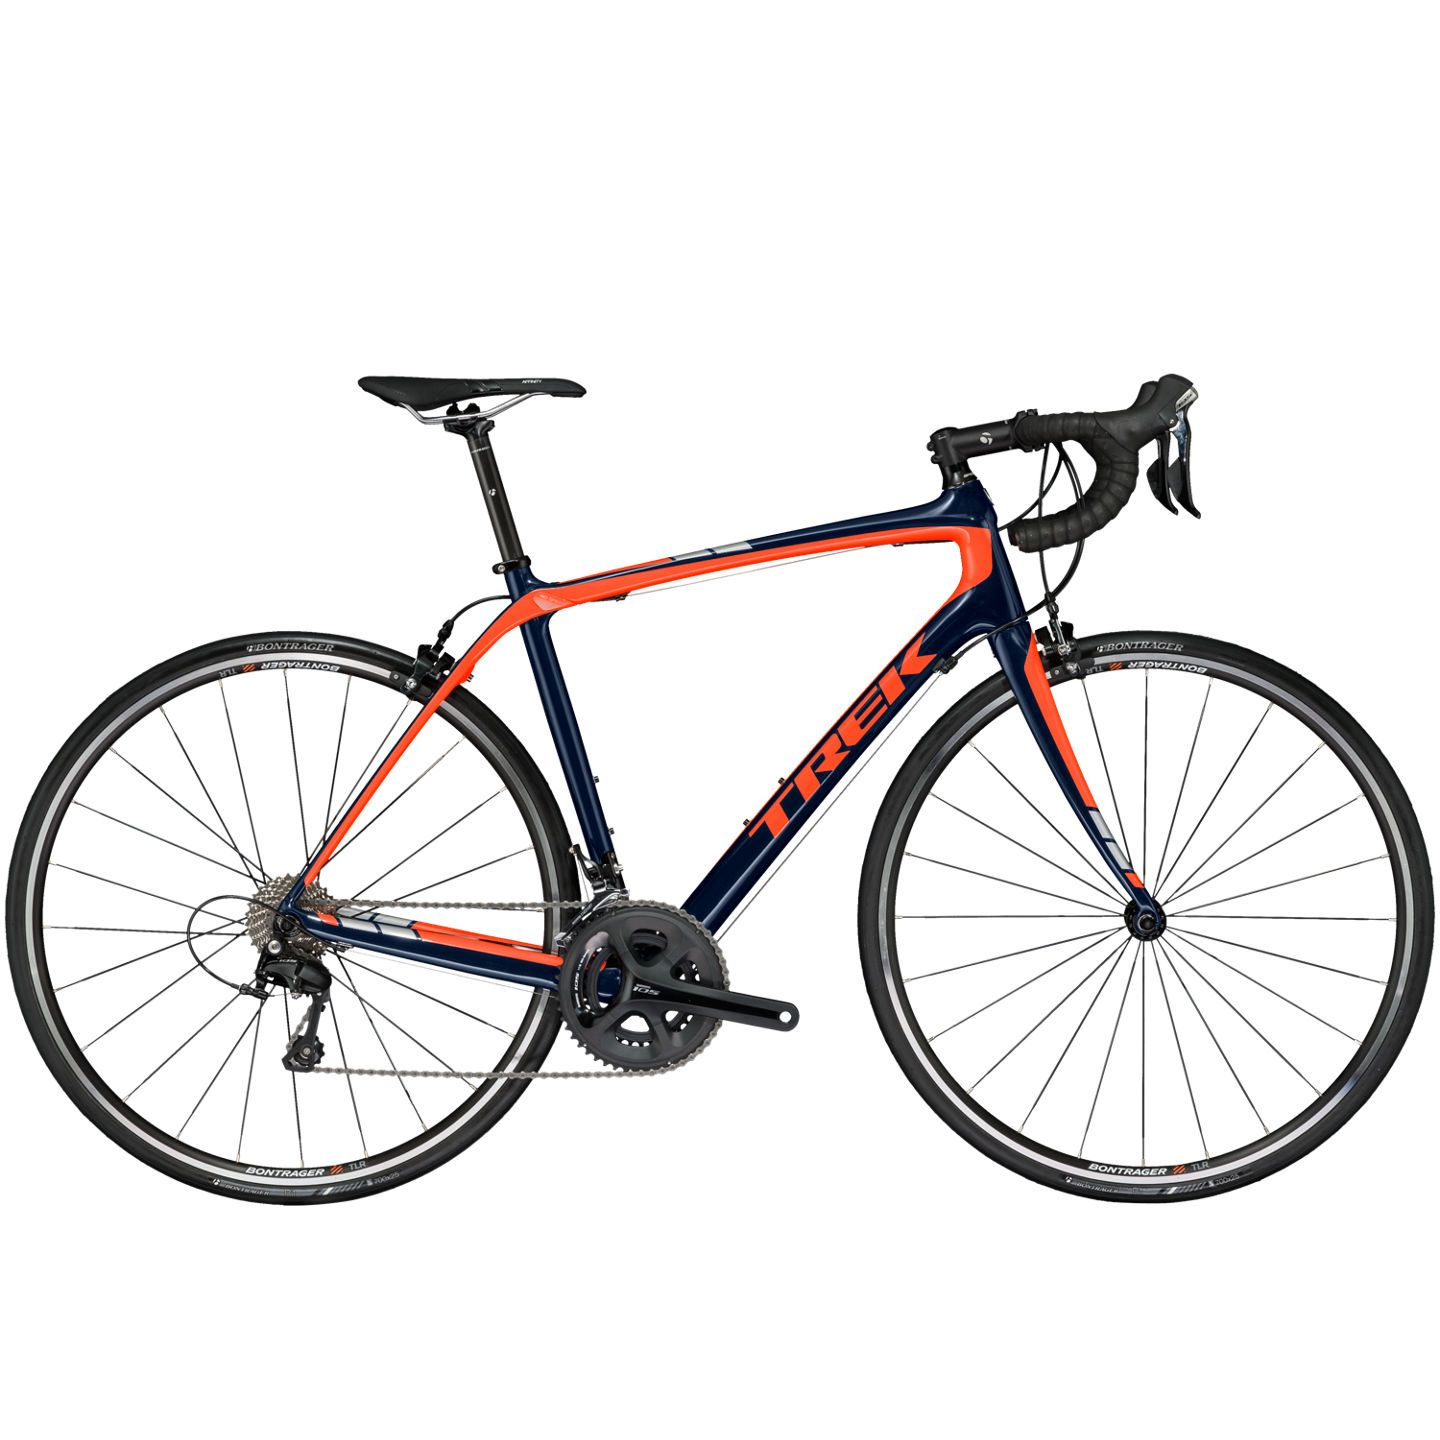 Vélo route Trek Domane S 5 Bleu/Orange 2017 - 54 cm